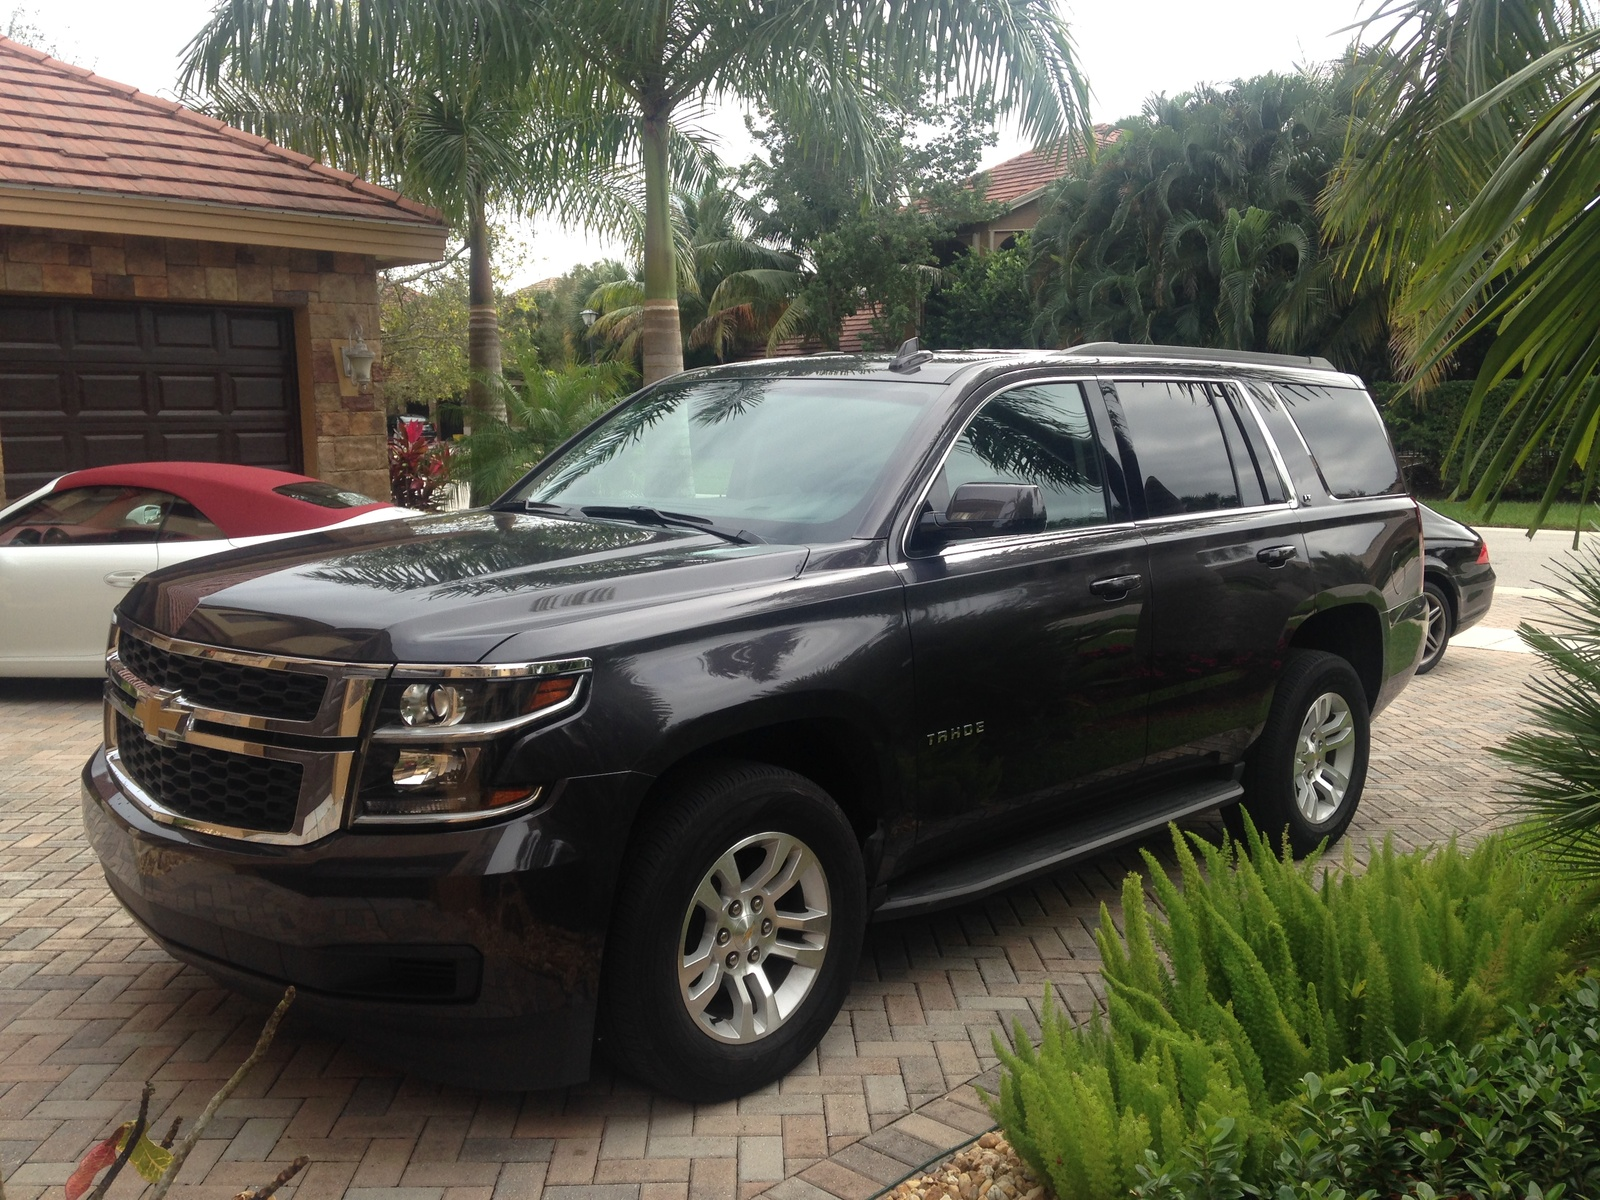 Used 2015 Chevy Tahoe For Sale On Cargurs Autos Post